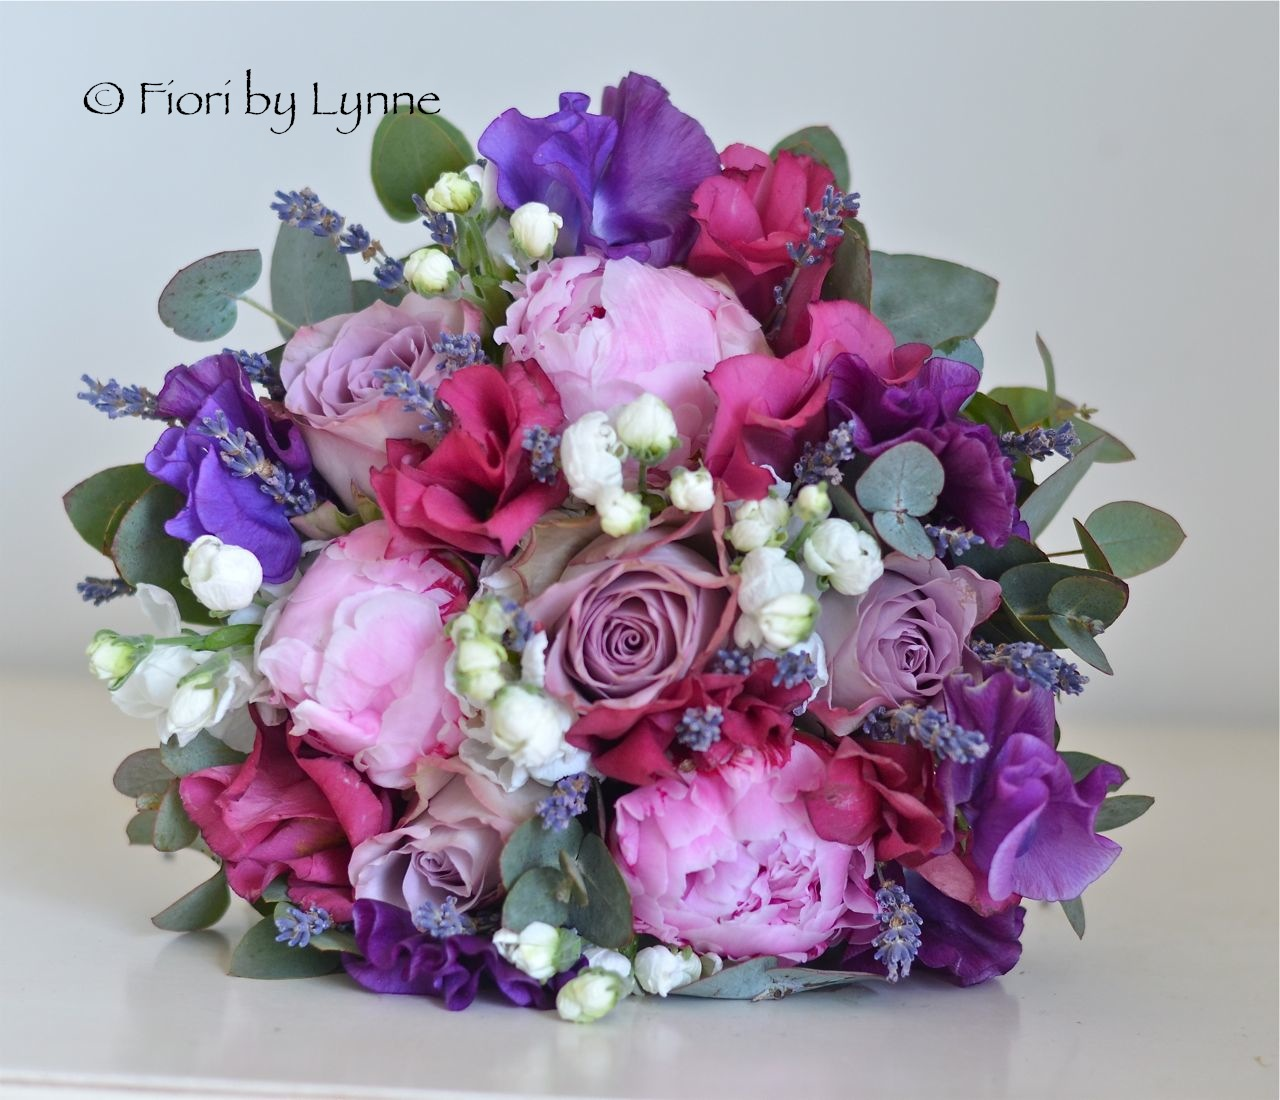 Purple And Pink Wedding Flowers: Wedding Flowers Blog: Lauren's Early Summer Lavender